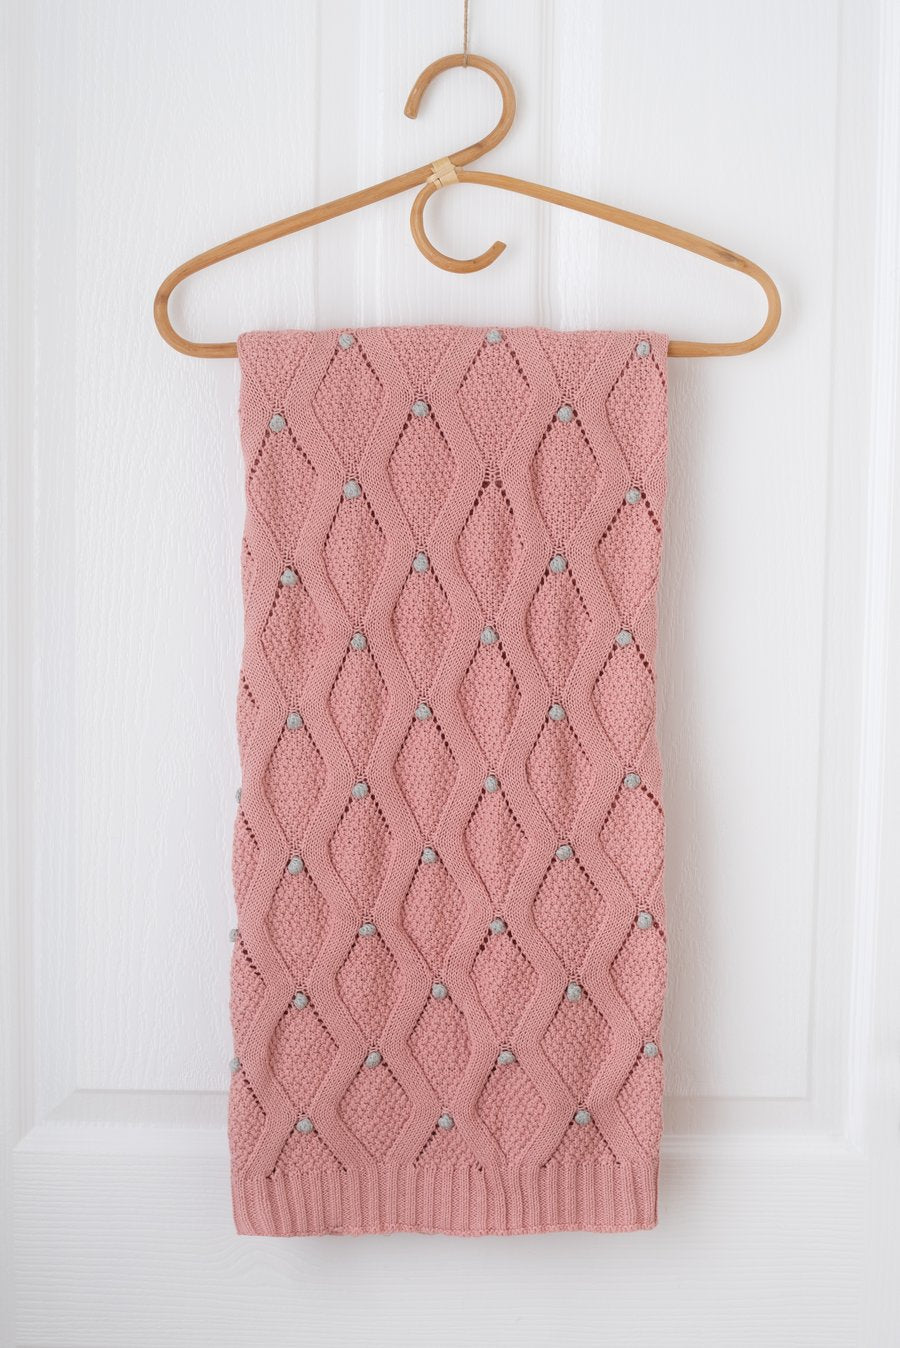 Kute Cuddles - Haven Knit Baby Blanket - Dusty Rose